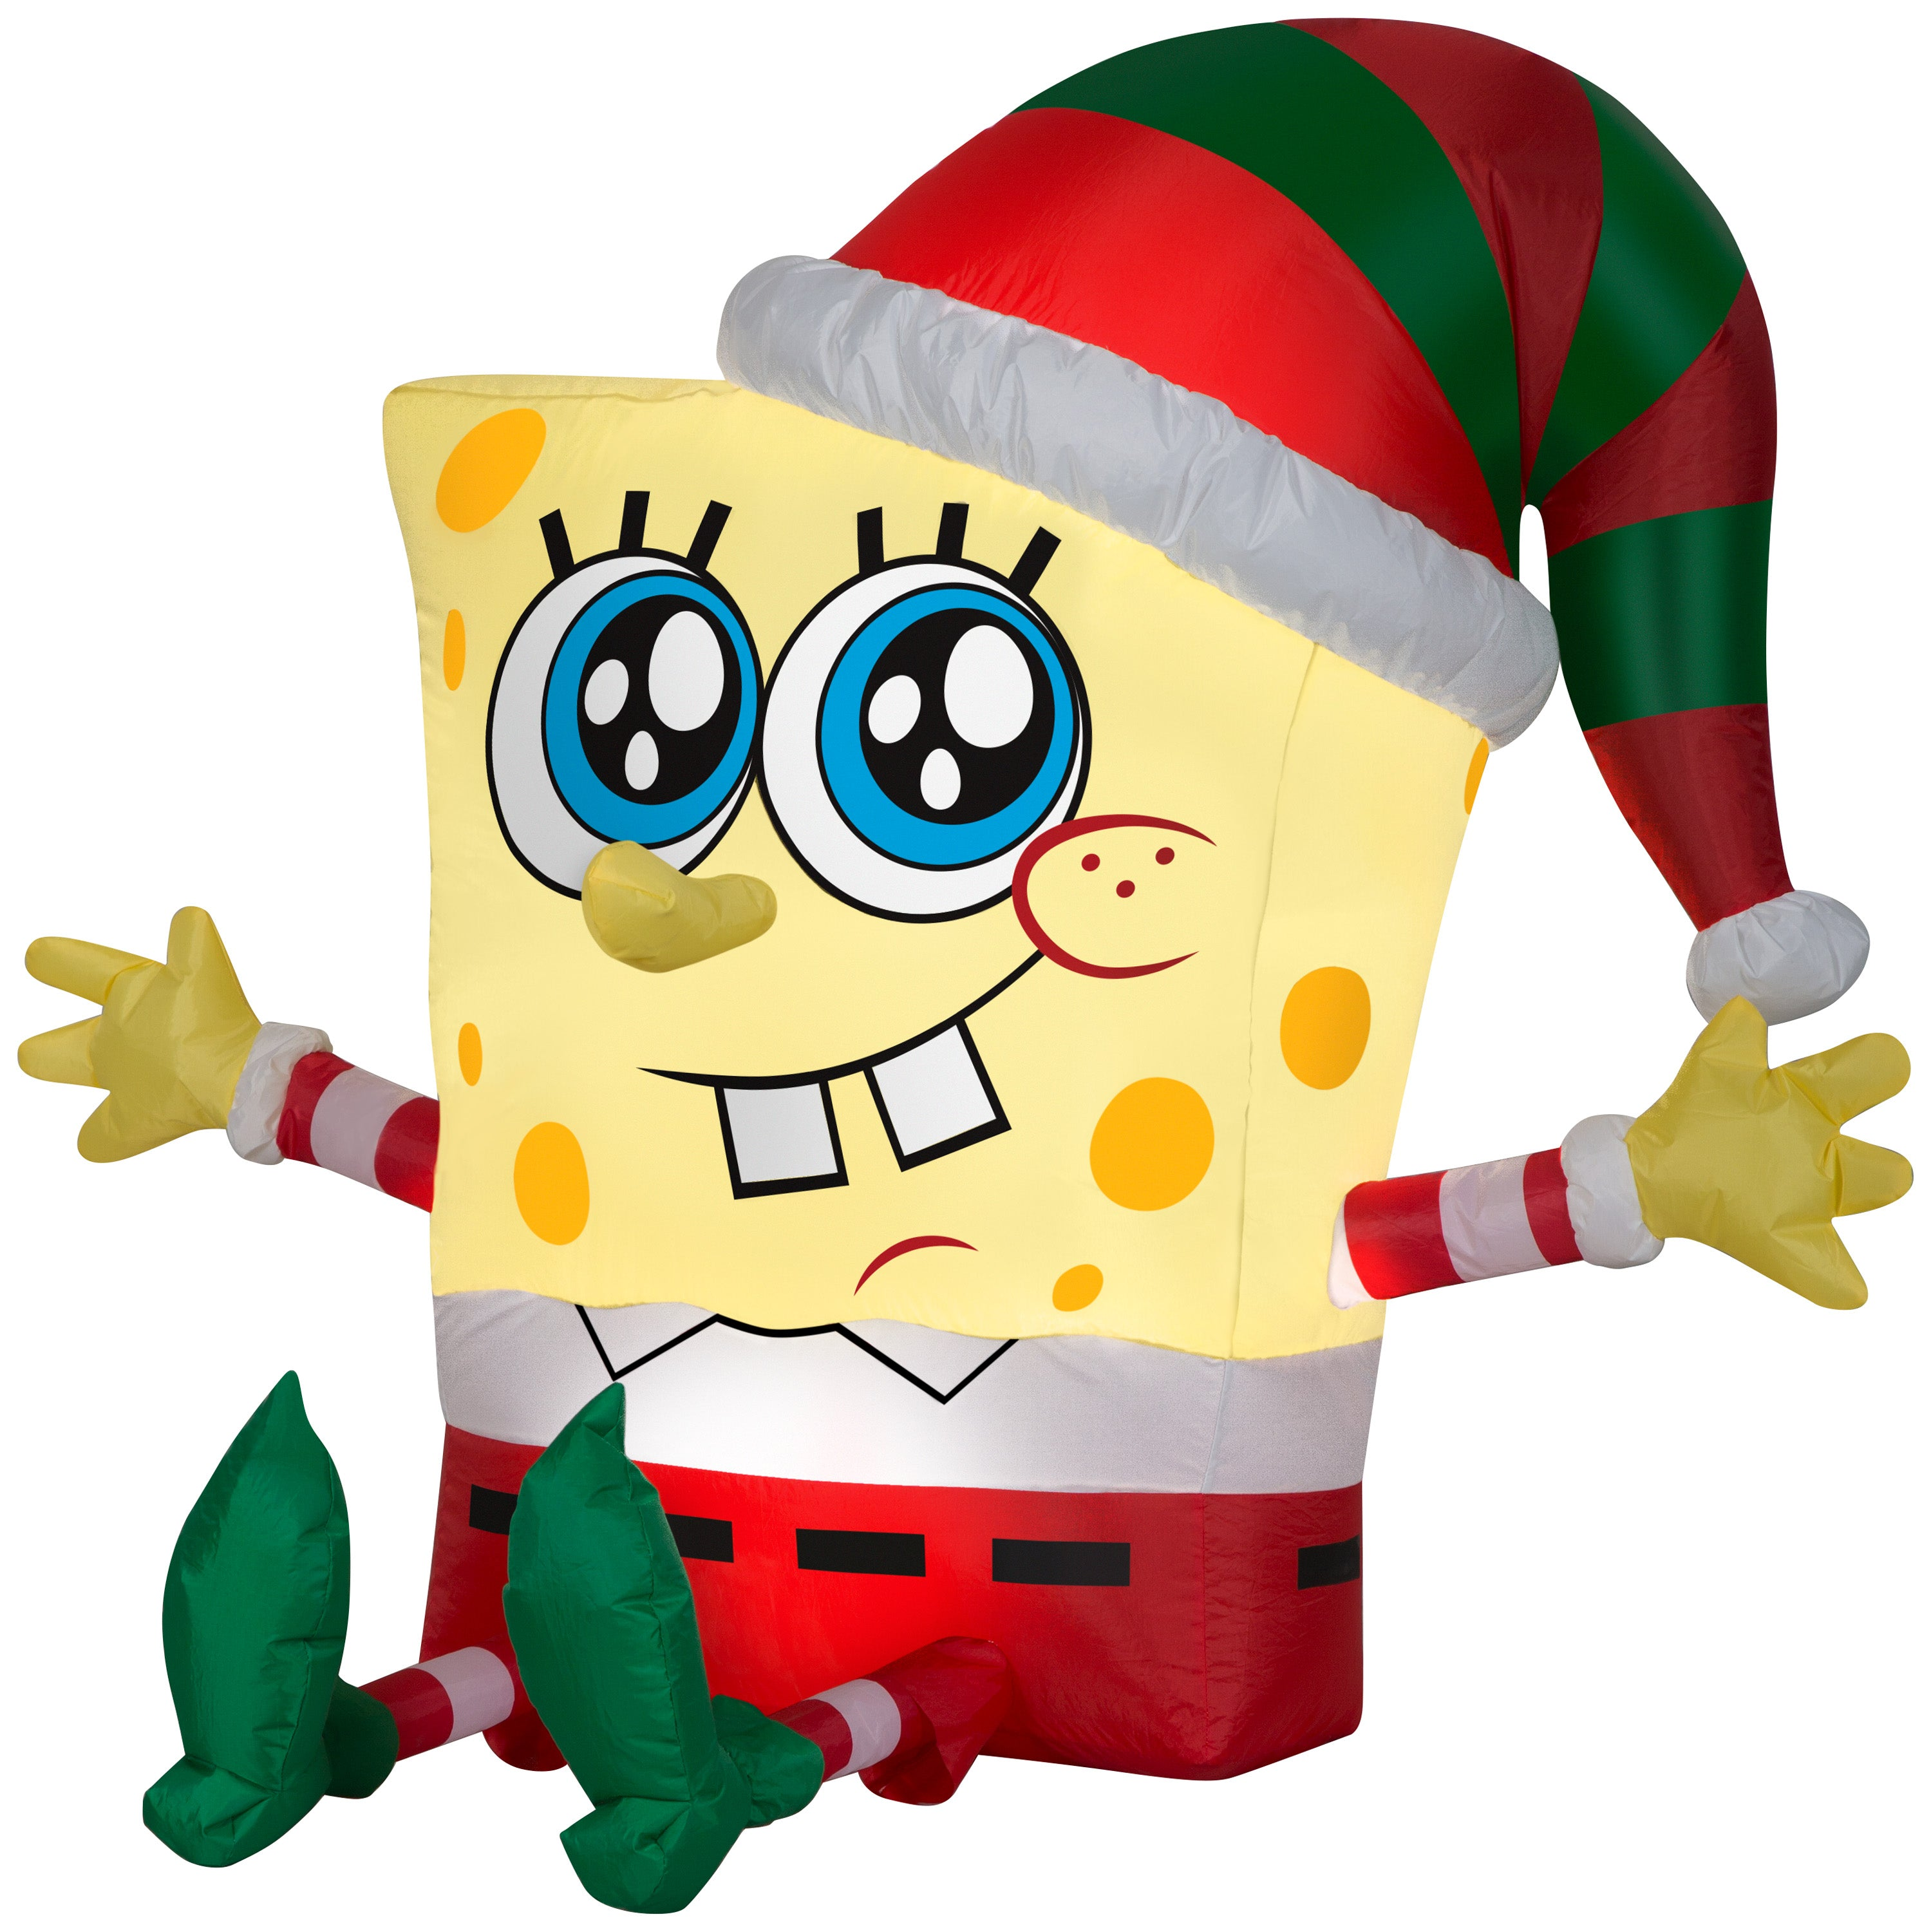 Gemmy 3.5ft Airblown Inflatable Spongebob in Holiday Outfit Nickelodeon